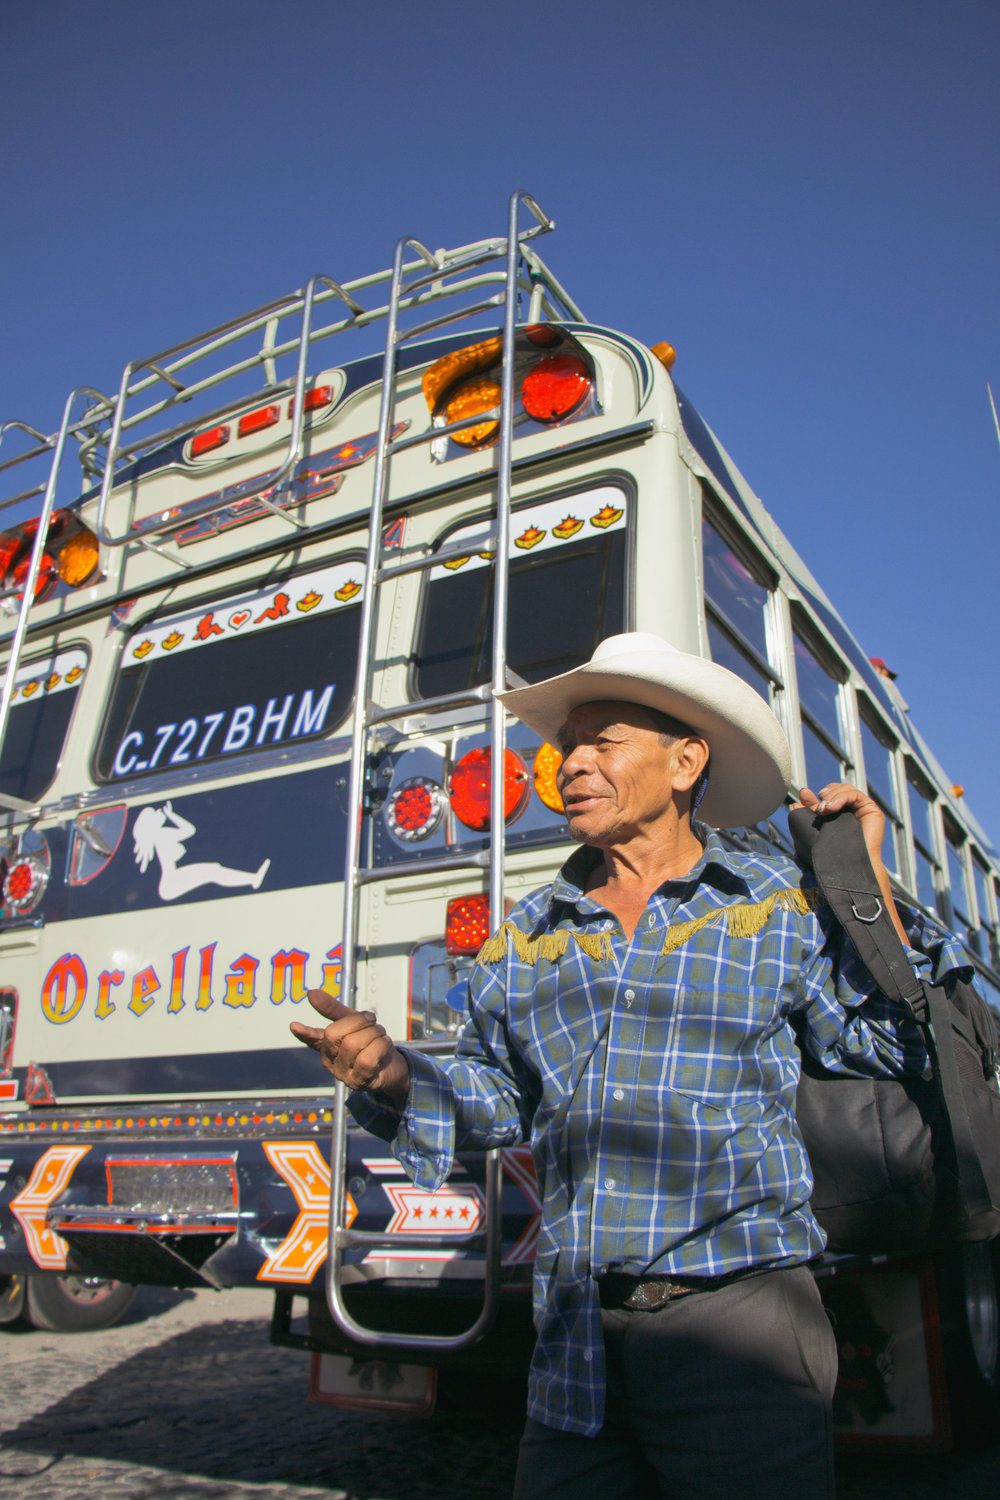 AN AYUDANTE CALLS OUT THE DESTINATION OF THE CHICKEN BUS IN THE ANTIGUA BUS TERMINAL ON JAN. 10. WHILE THEIR BUS IS PARKED IN A STATION, AYUDANTES WILL YELL THE NAME OF THEIR BUS'S DESTINATION IN HOPES OF GAINING MORE PASSENGERS.